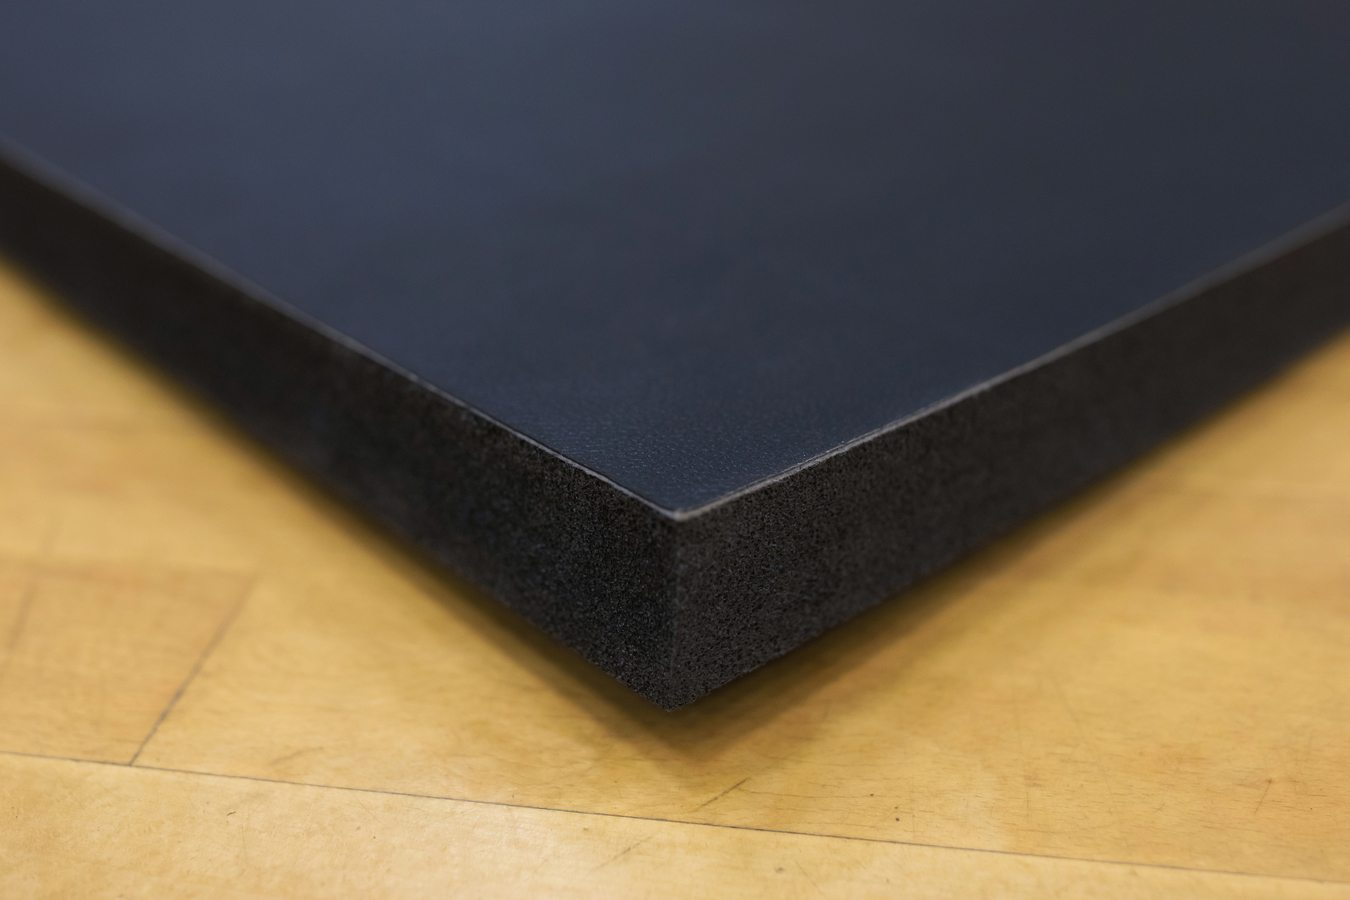 Corner of Black Promat PVC Smooth Roll Out Mats